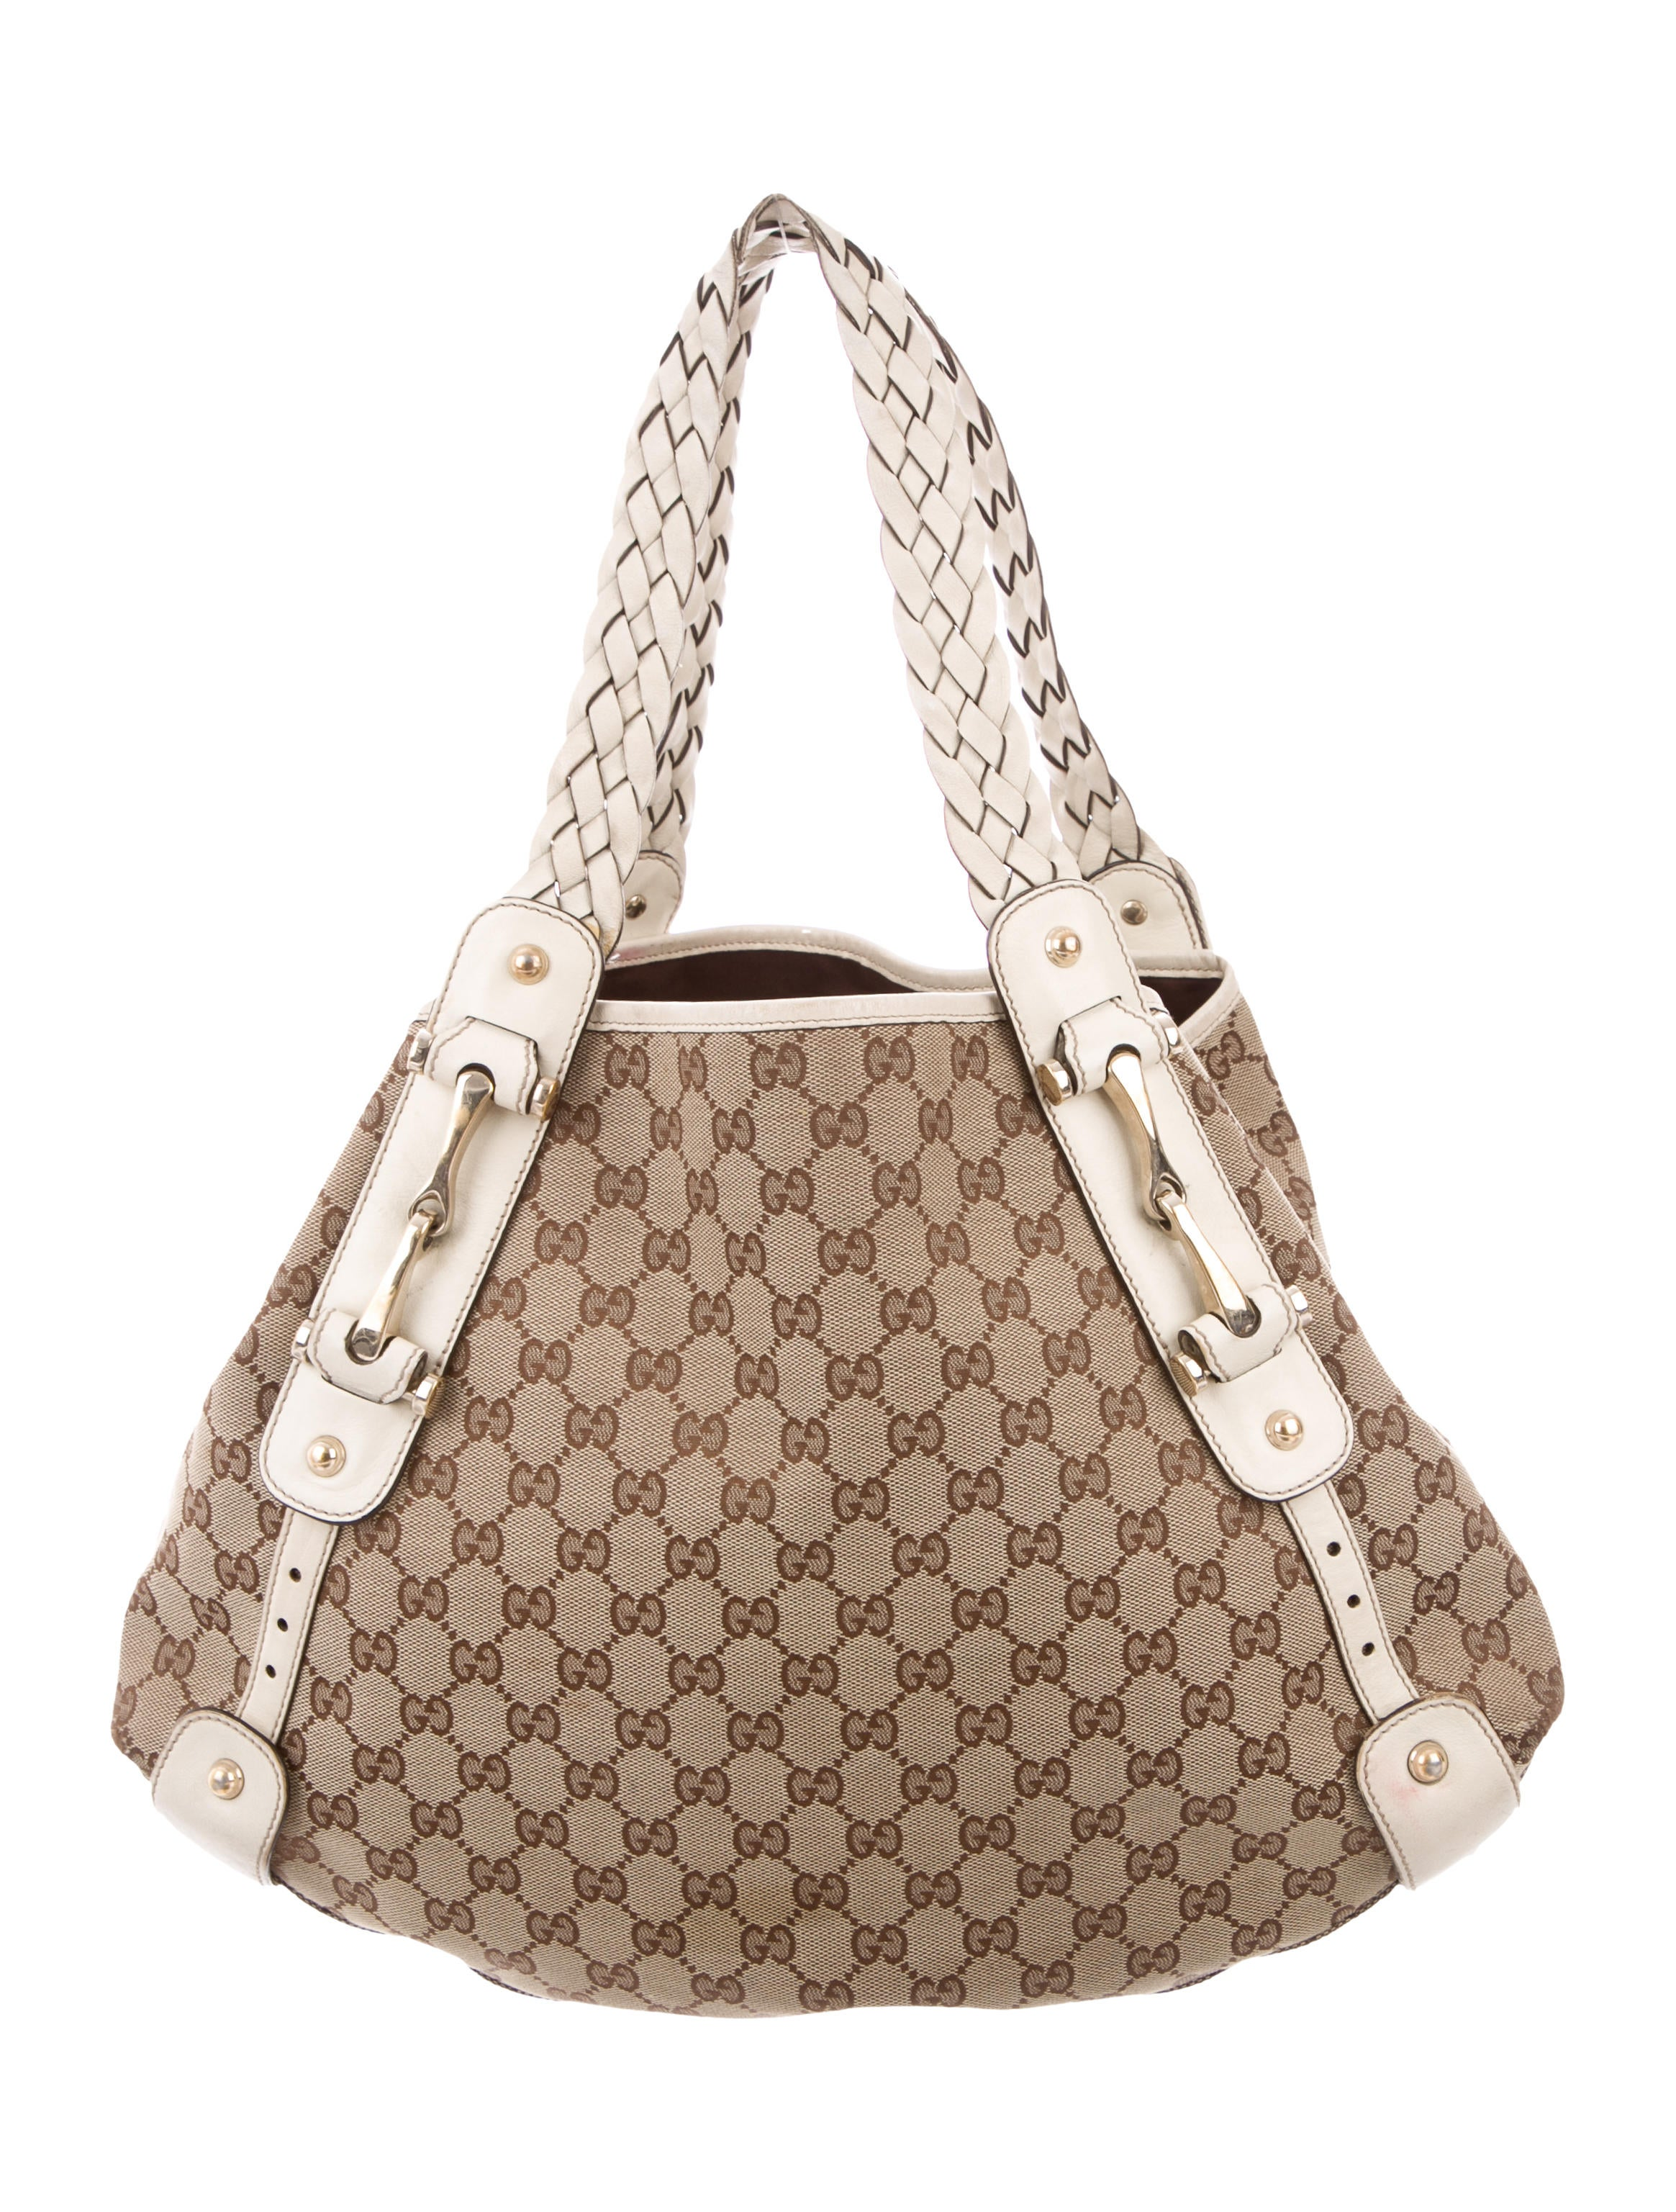 616f1cd5ec46 Gucci GG Canvas Medium Pelham Tote - Handbags - GUC255146 | The RealReal